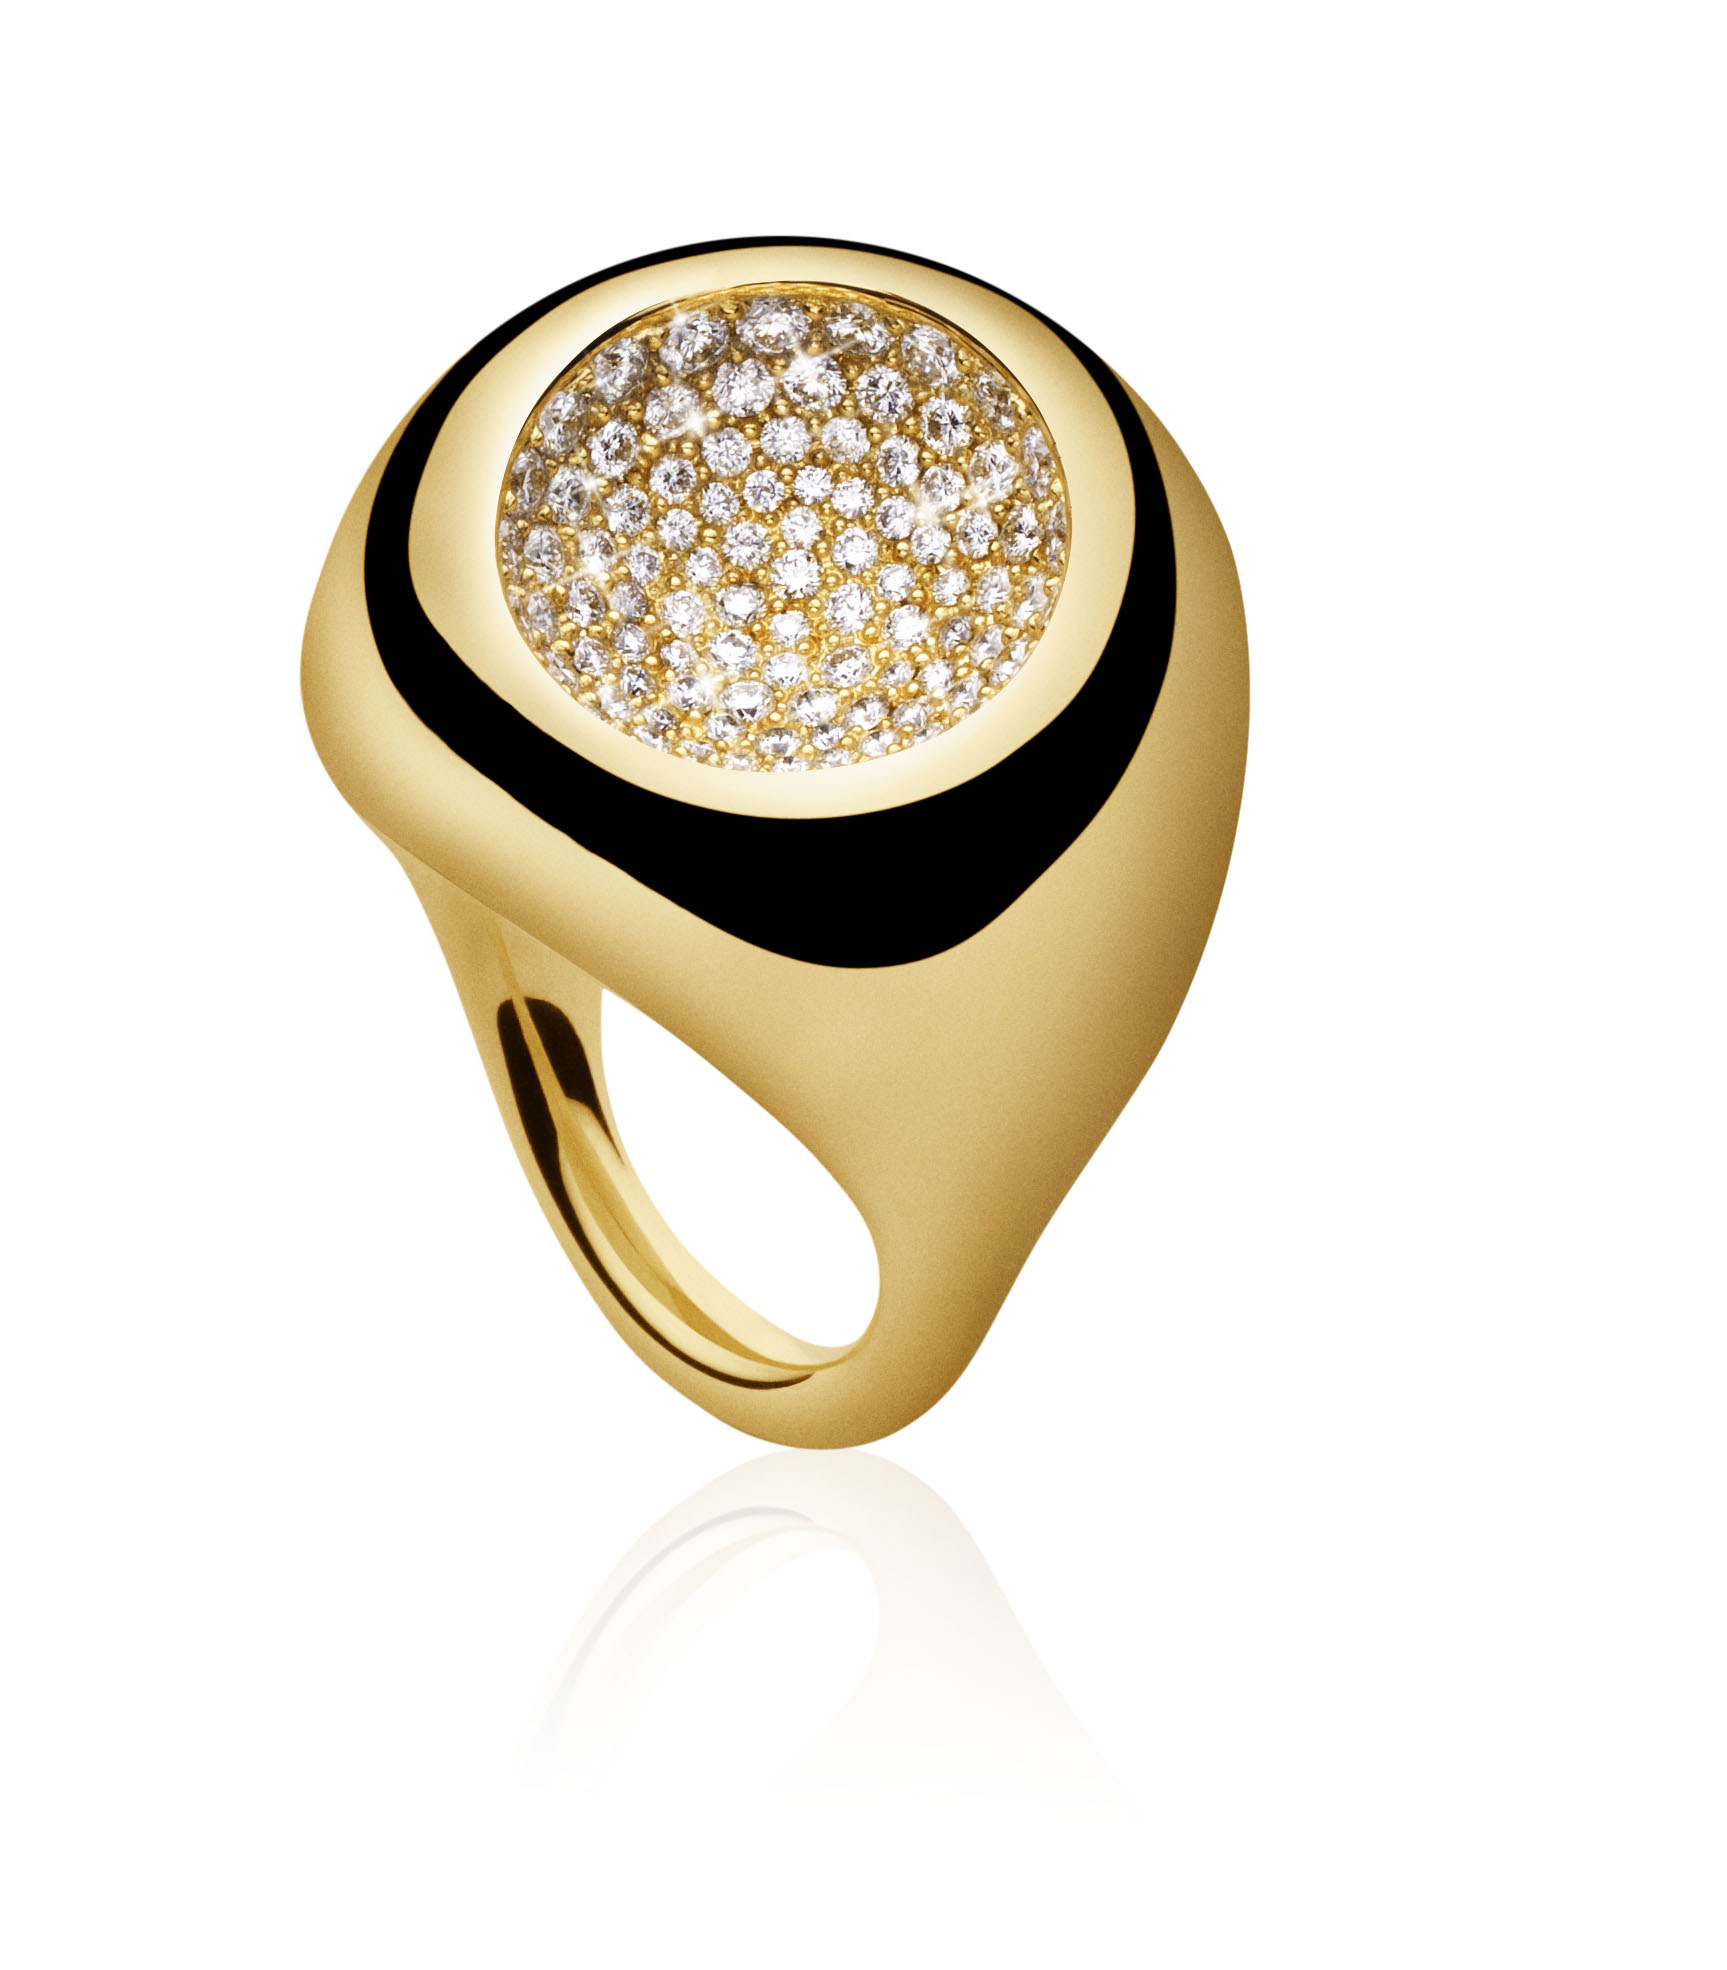 Cave Ring,  Yellow Gold and Pave Diamonds. Jacqueline Rabun for Georg Jensen. Image Courtesy of J Rabun